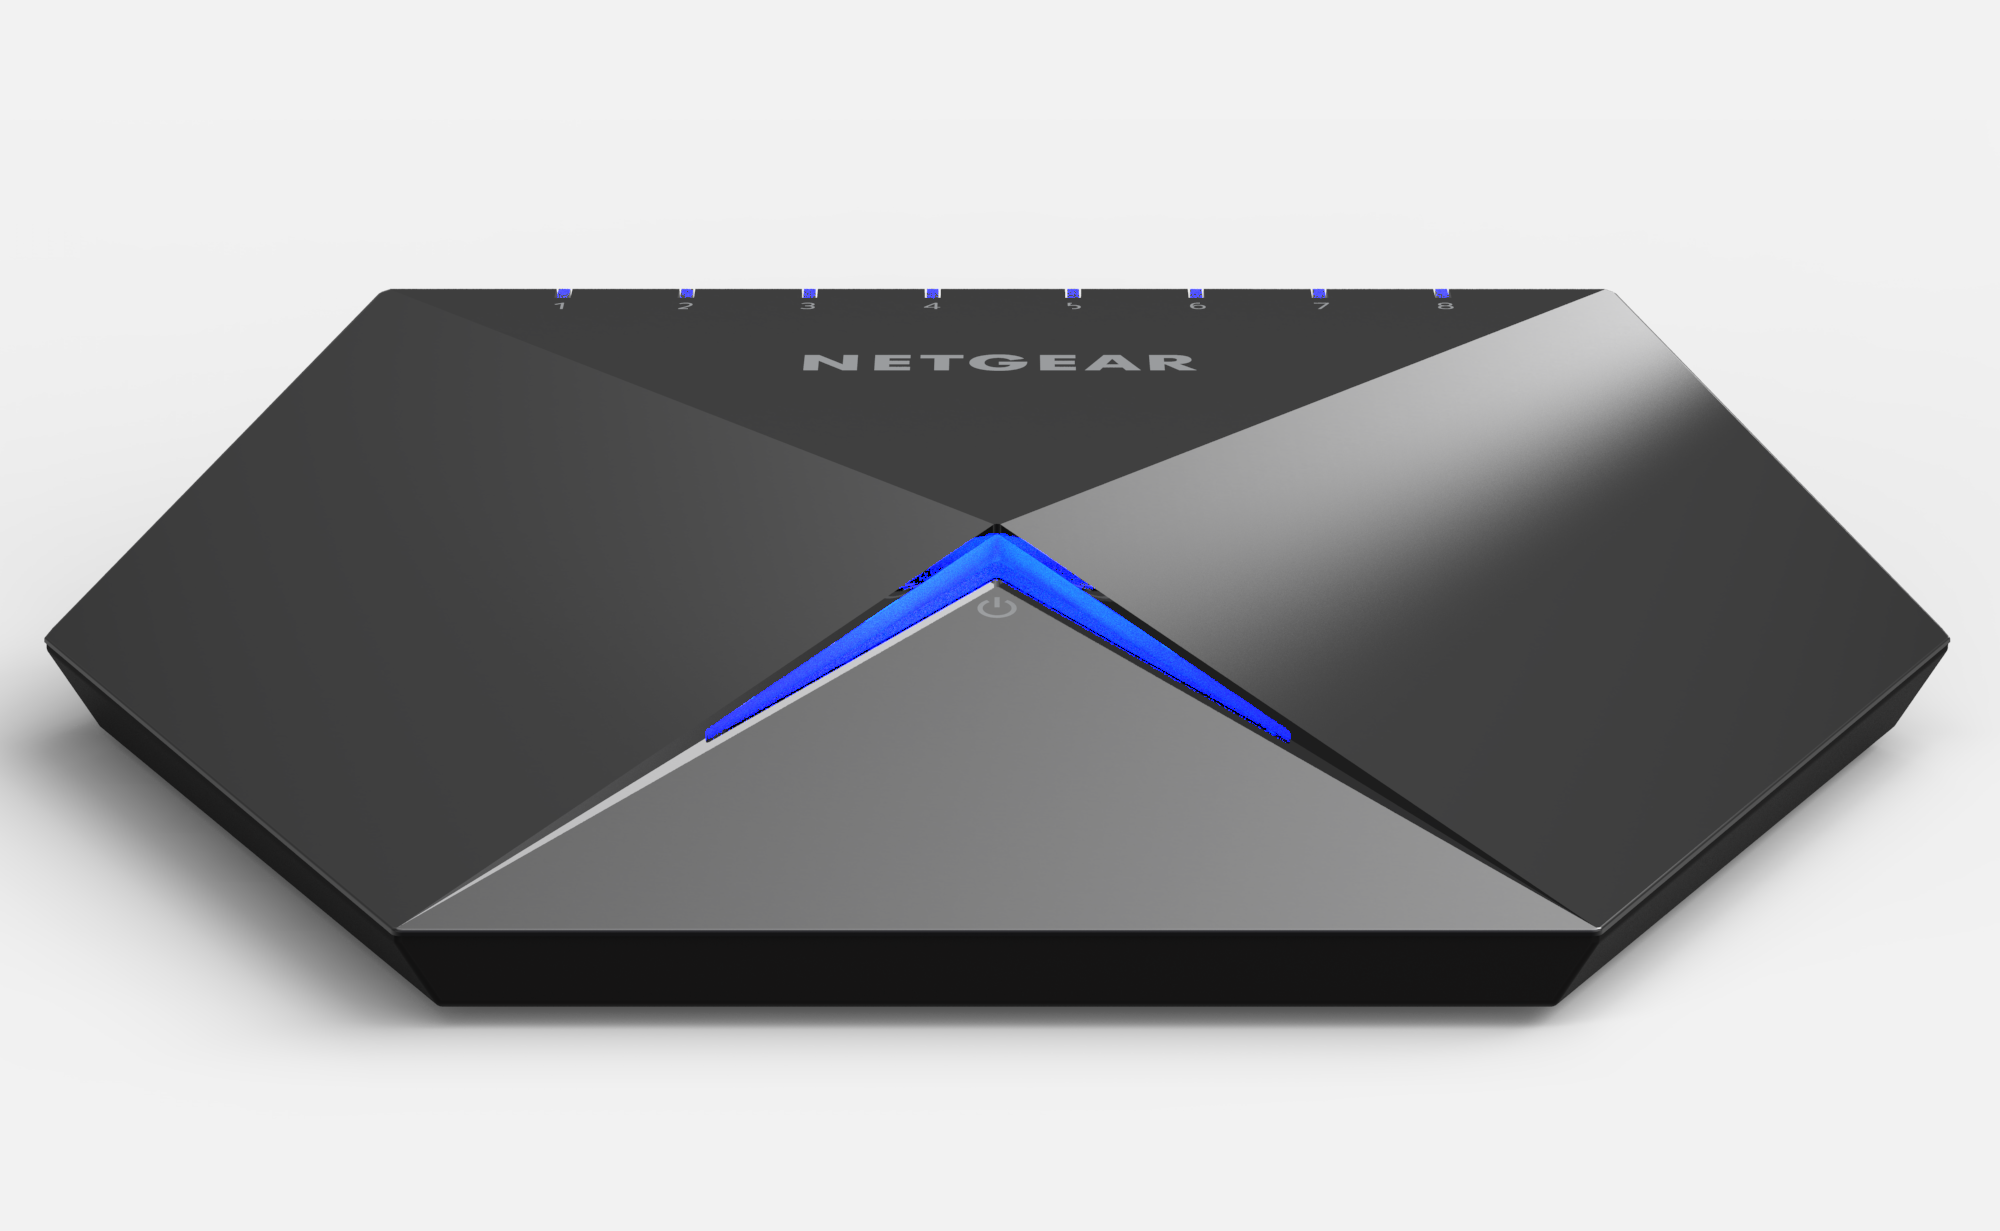 NETGEAR INTRODUCES NIGHTHAWK SWITCH S8000 | 2017 | Press Releases ...